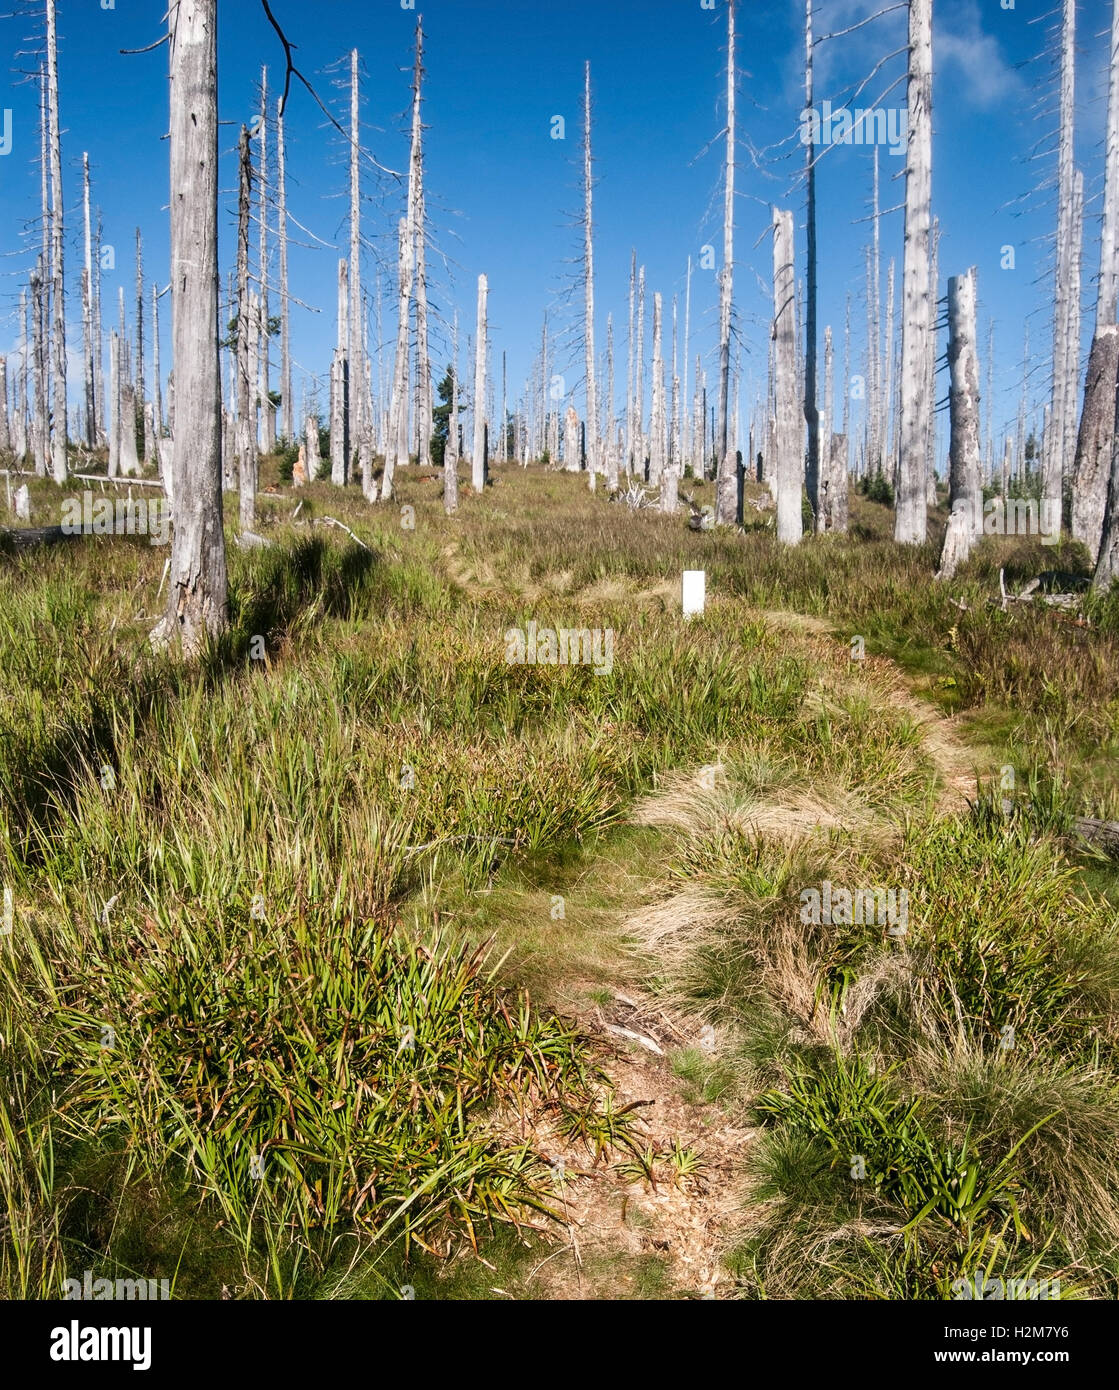 pathway on grass with forest devastated by bark beetle infestation and border stone on Blatny vrch in Sumava mountains - Stock Image